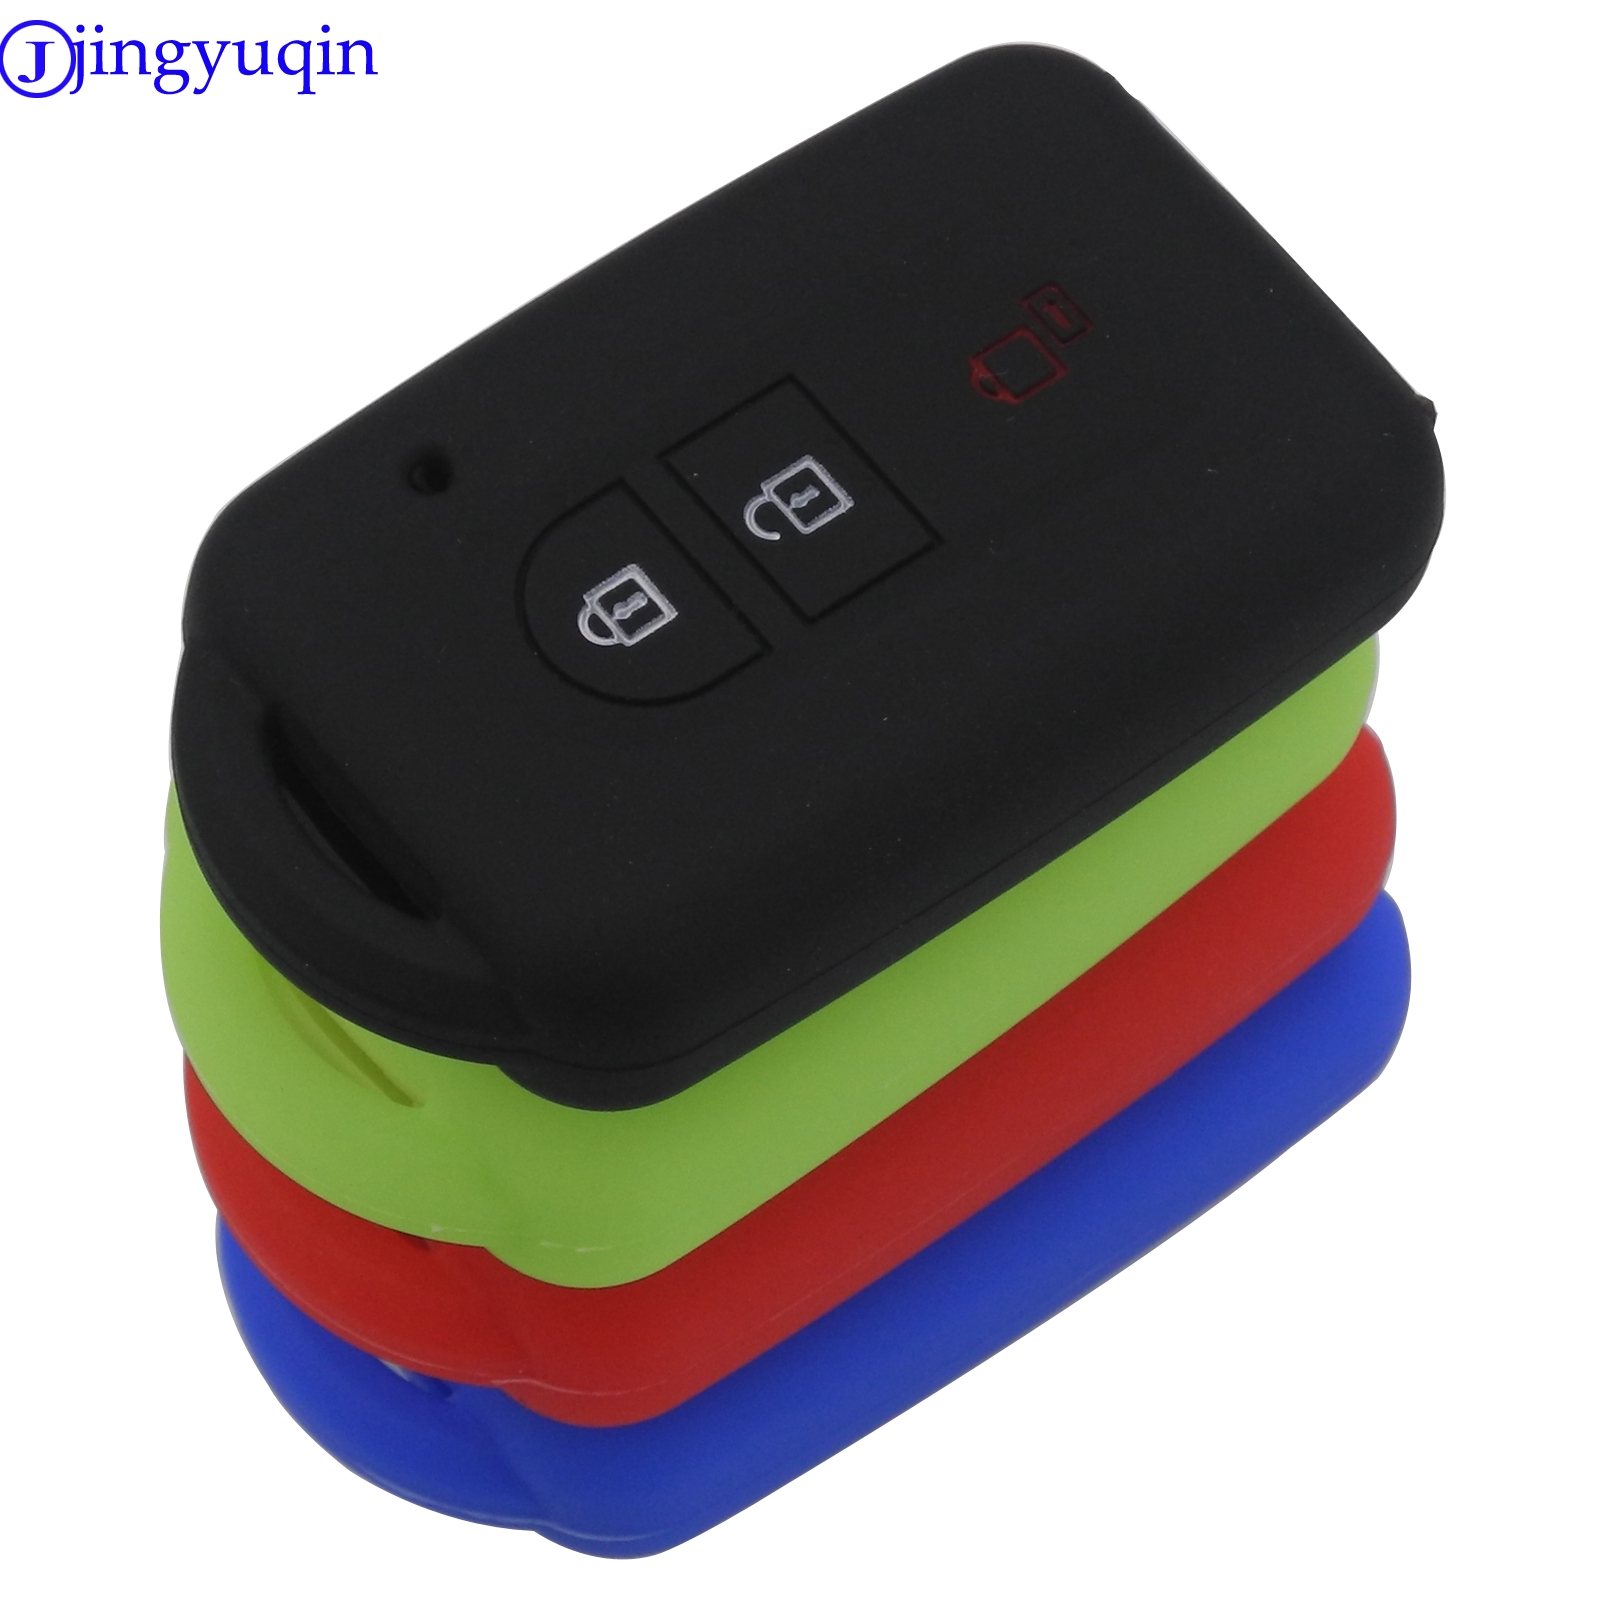 Jingyuqin 3 Buttons Entry Remote Car Key Silicone Cover Case For Nissan Duke MICRA QASHQAI JUKE X-Trail NAVARA FOB Styling